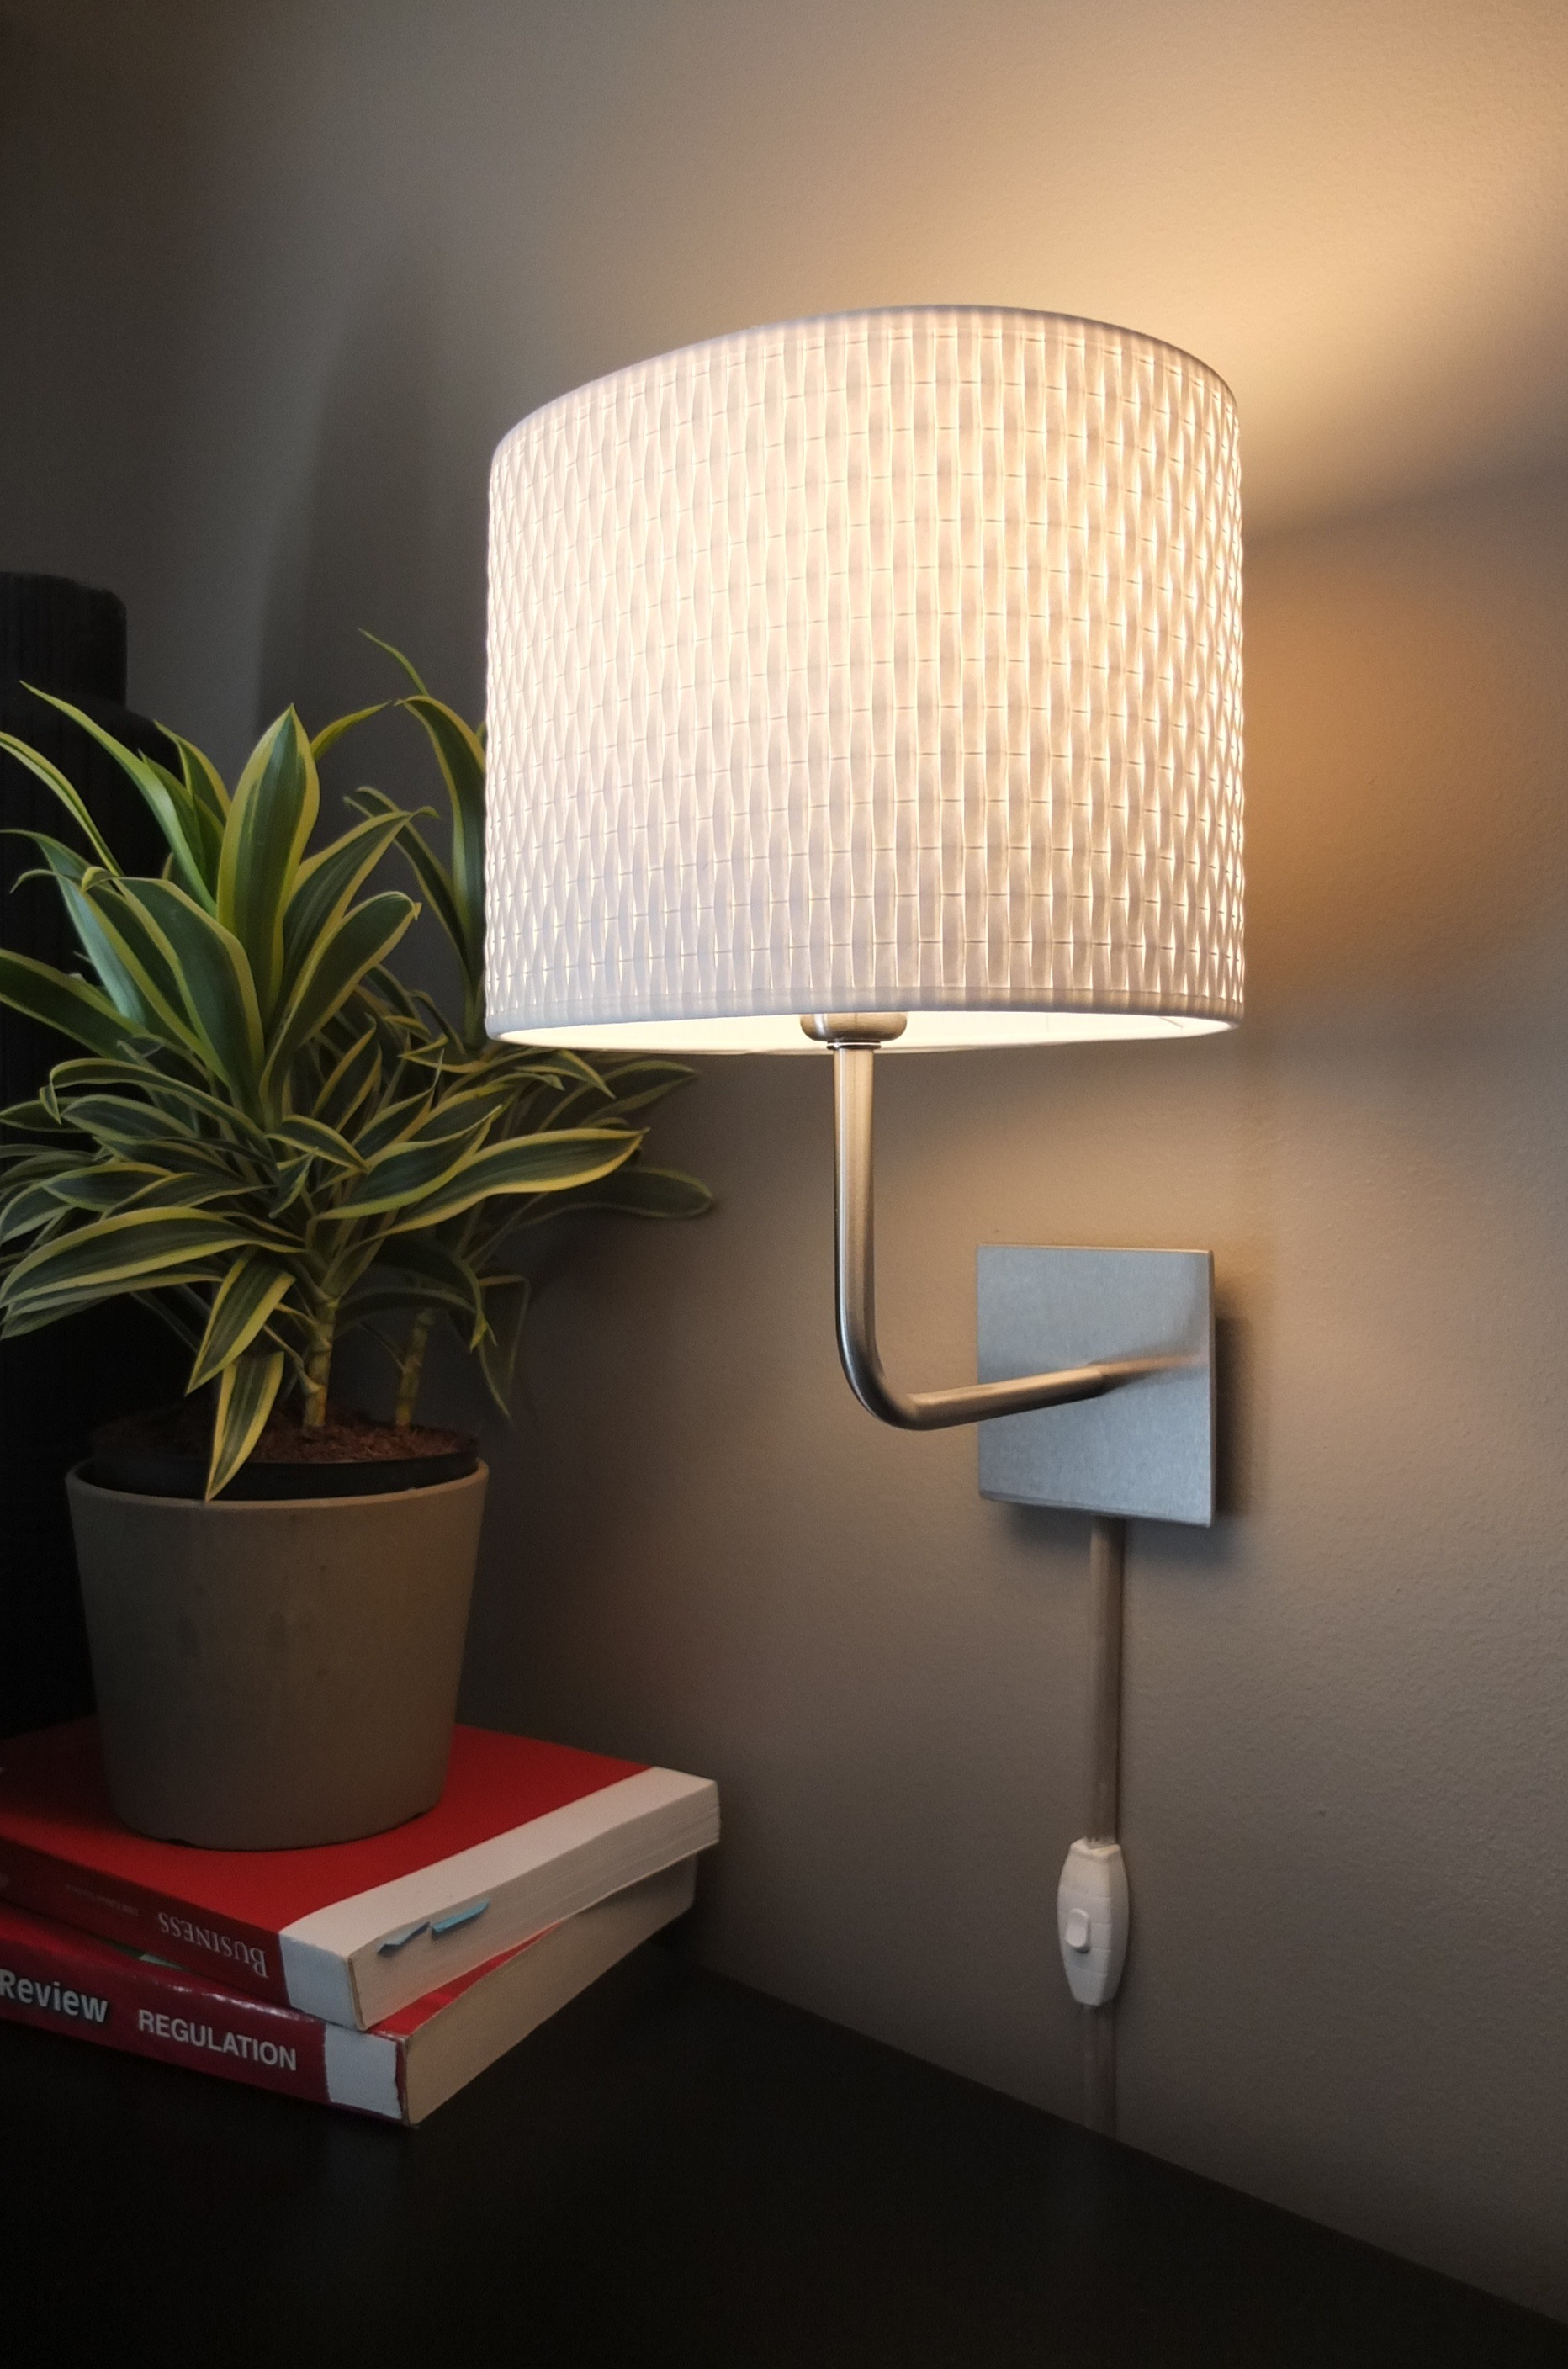 Top 10 Wall Mounted Bedside Lamps 2019 Warisan Lighting